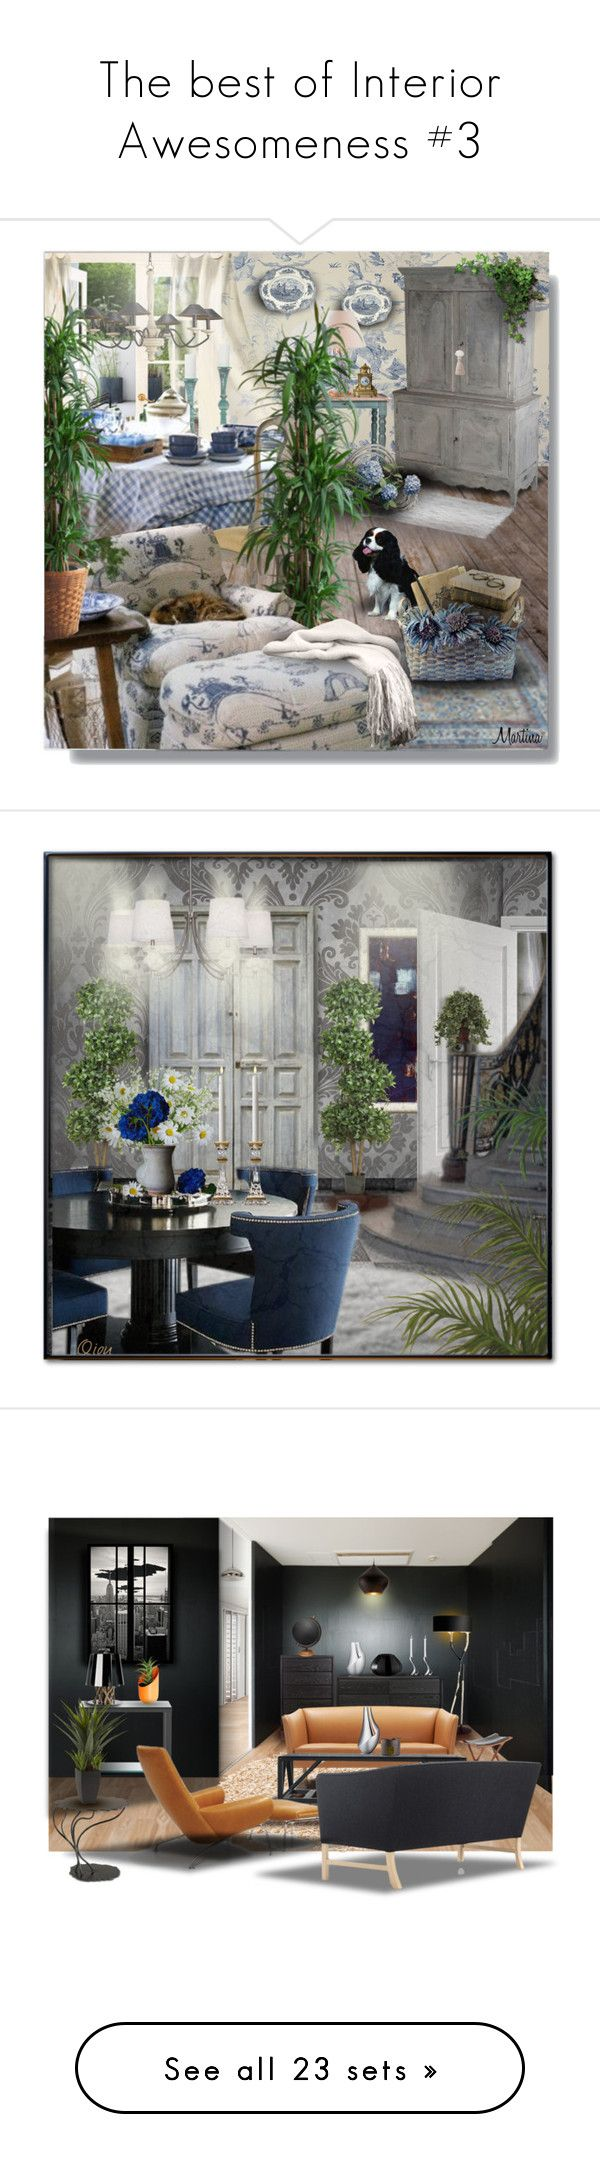 The best of Interior Awesomeness #3 by kearalachelle on Polyvore featuring Interiorawesomenessbest, interior, interiors, interior design, home, home decor, interior decorating, SANDERSON, John Rocha and Johnson Brothers